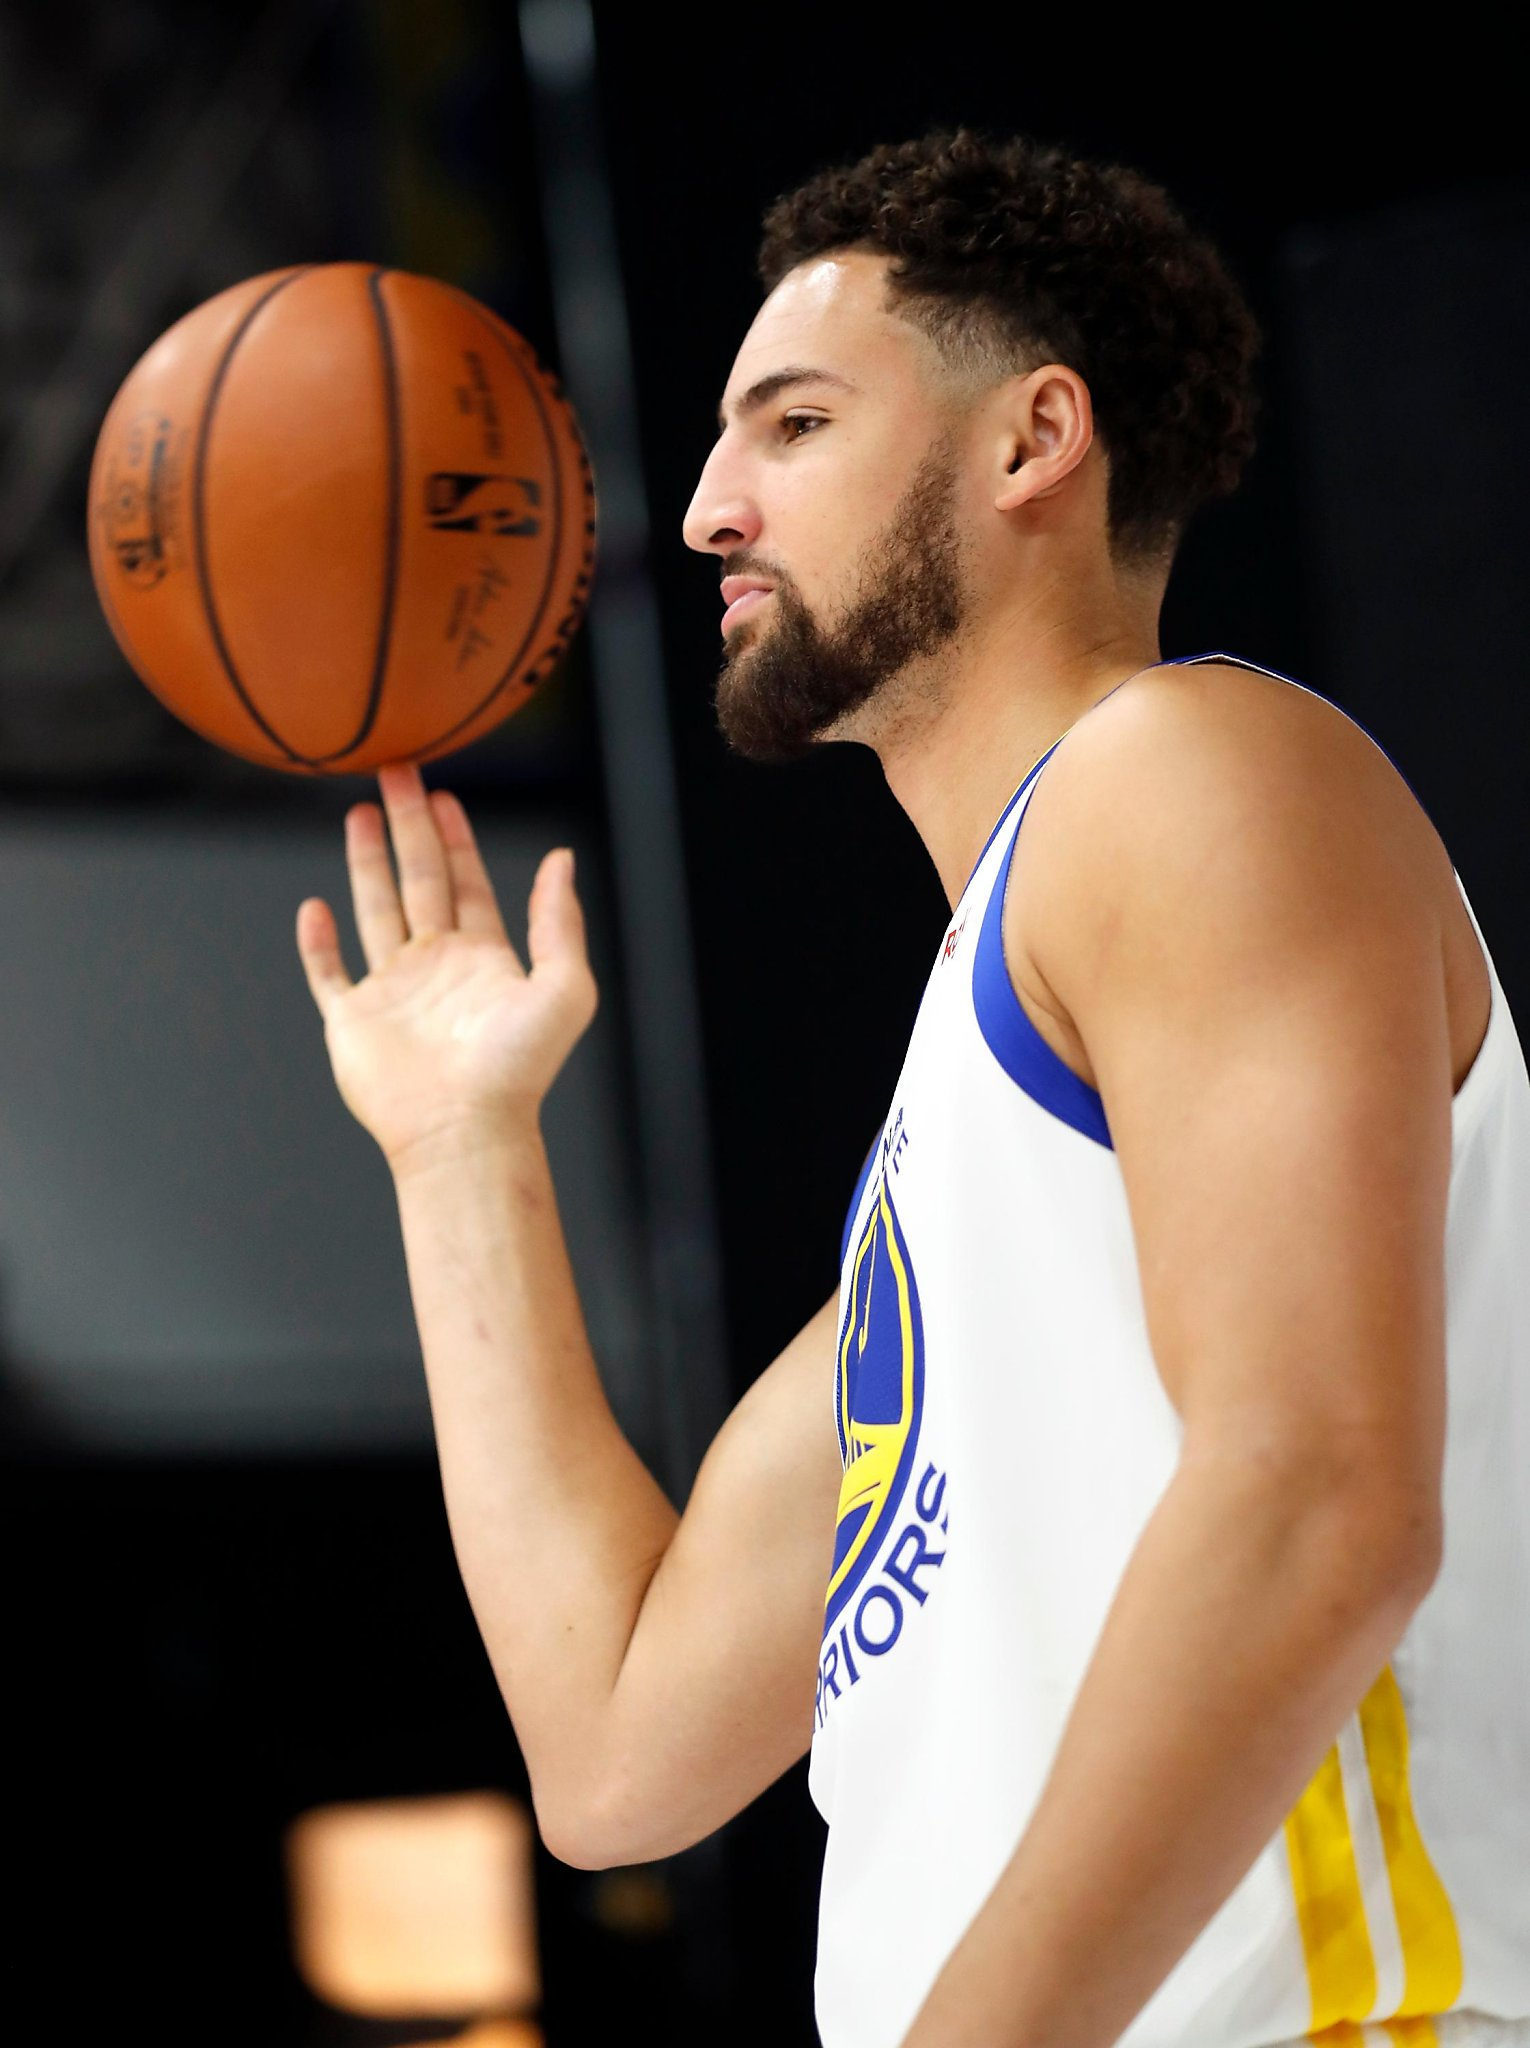 c6c69f7fd181  It covers his ugly face more   Warriors hilariously roast Klay Thompson s  new beard - SFChronicle.com